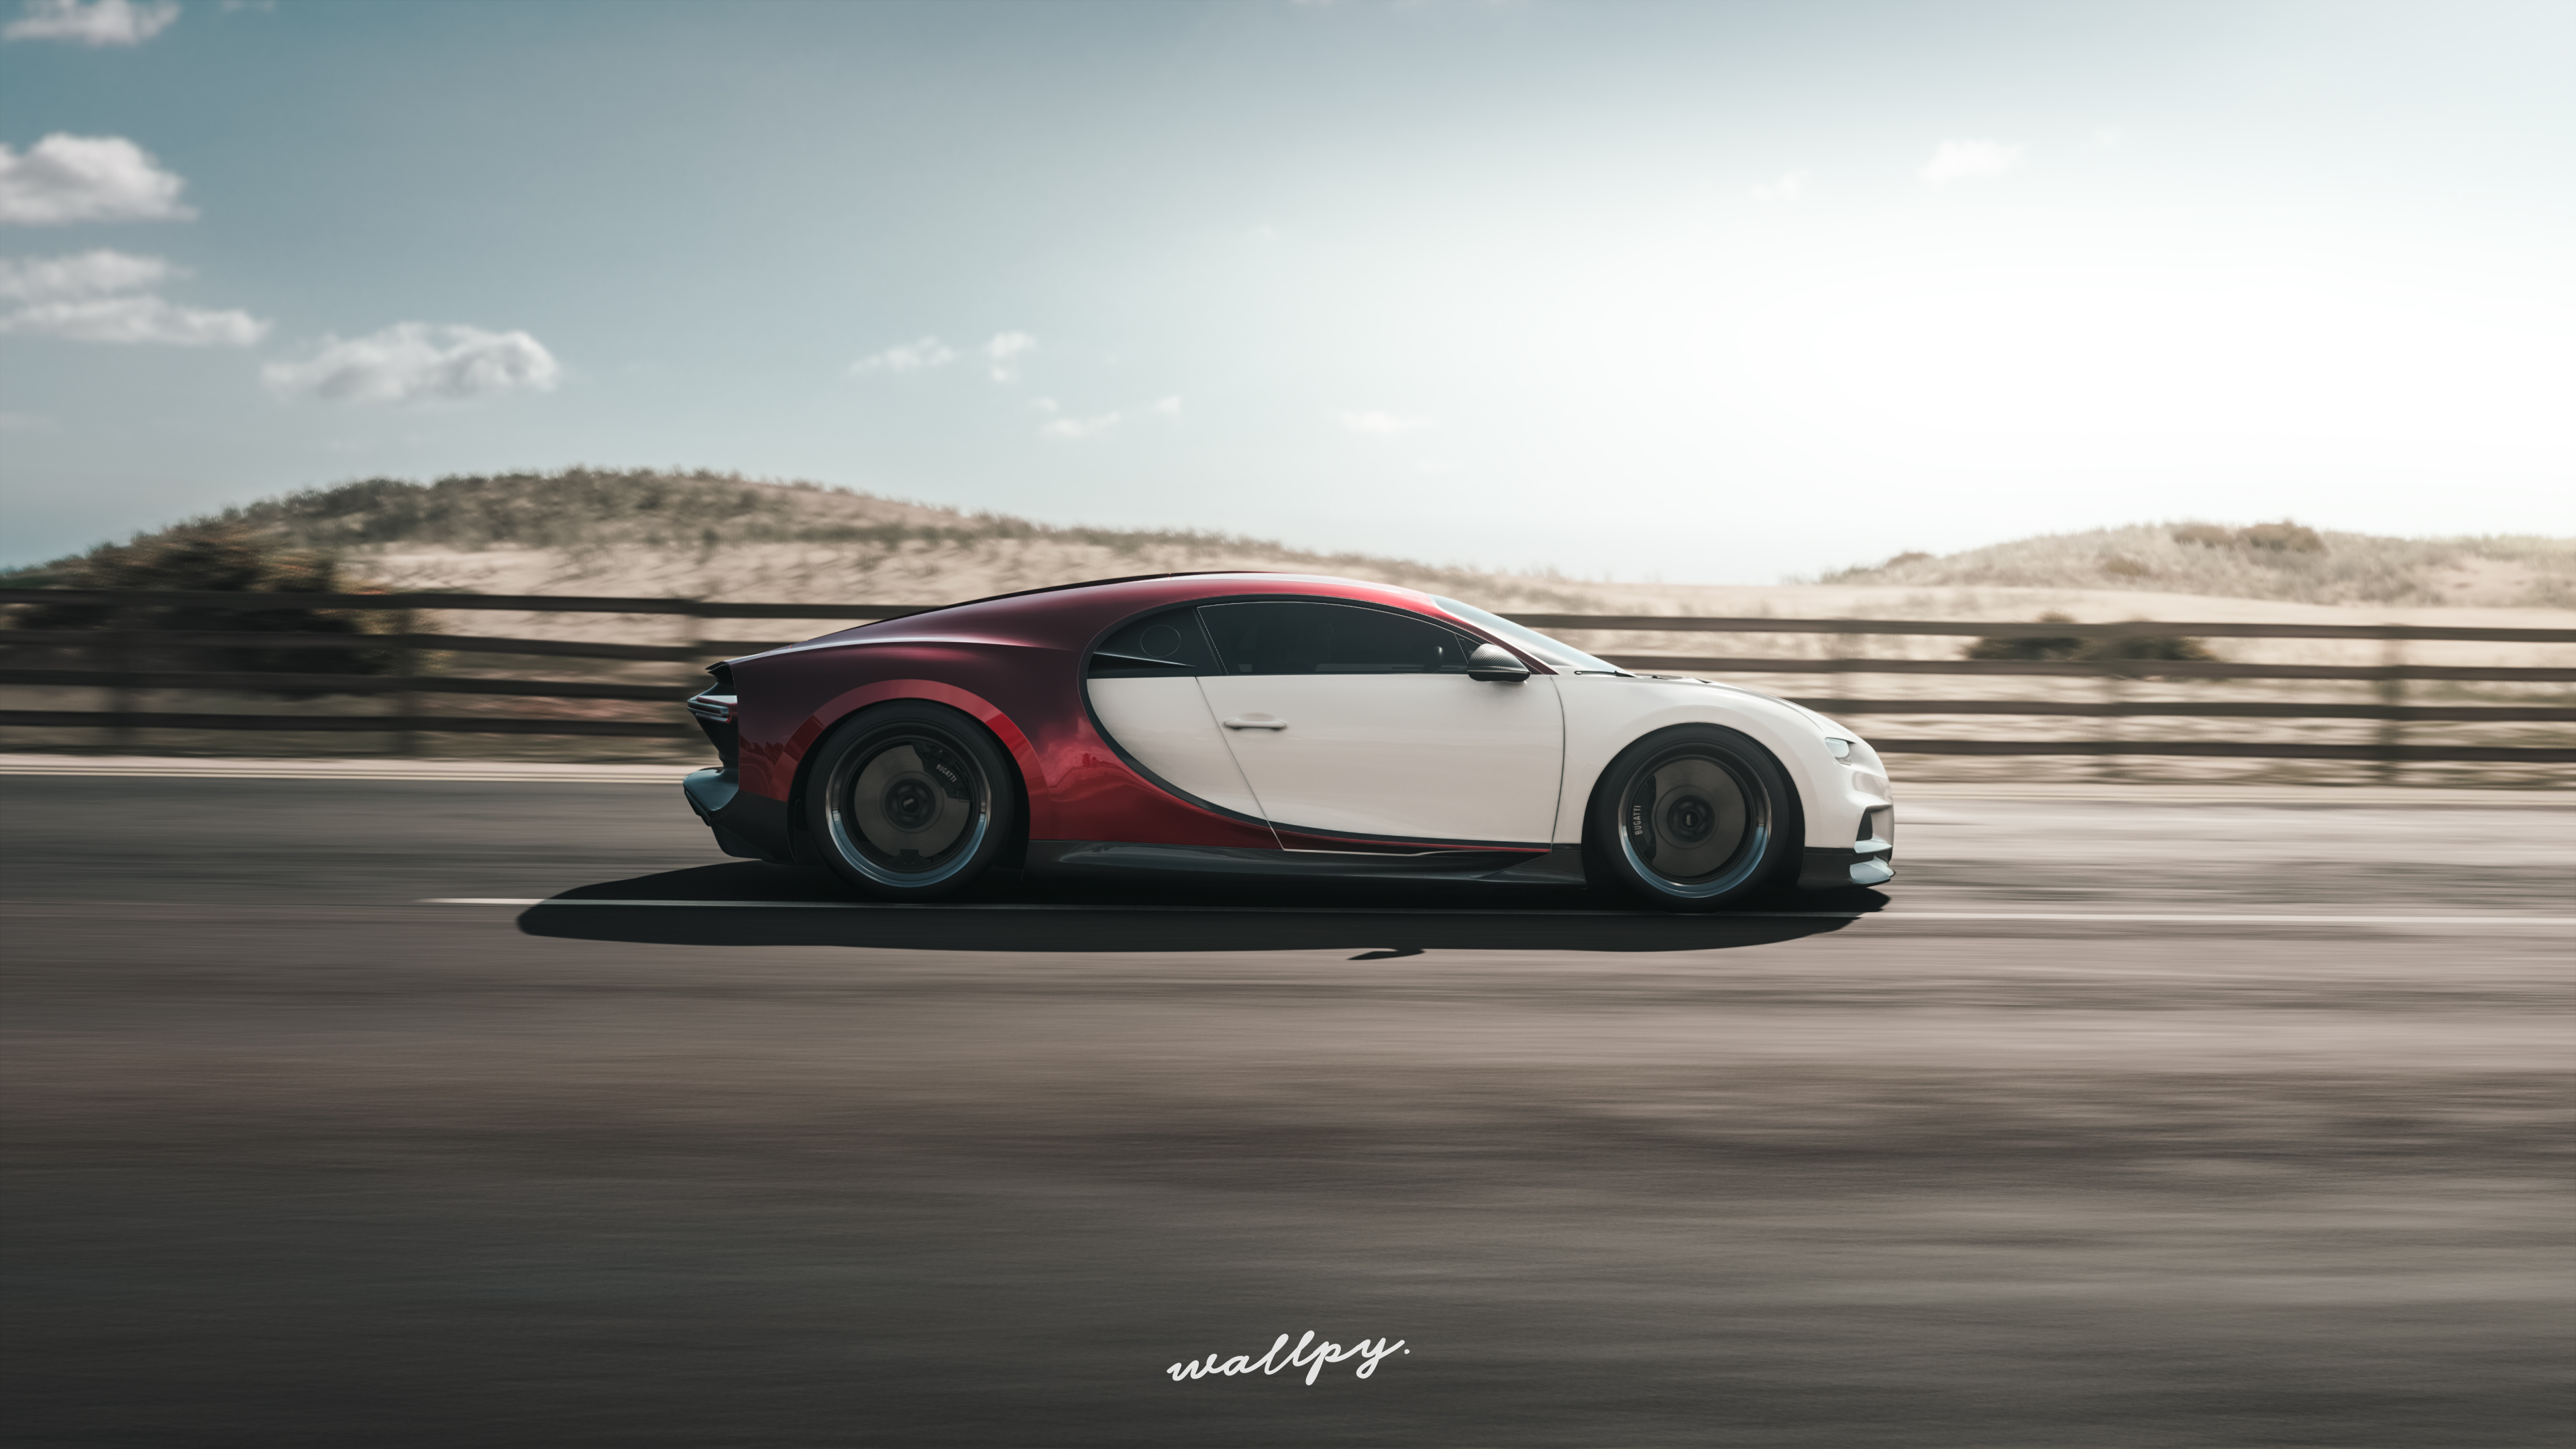 Bugatti chiron forza horizon 4 hd games 4k wallpapers images backgrounds photos and pictures - Forza logo wallpaper ...